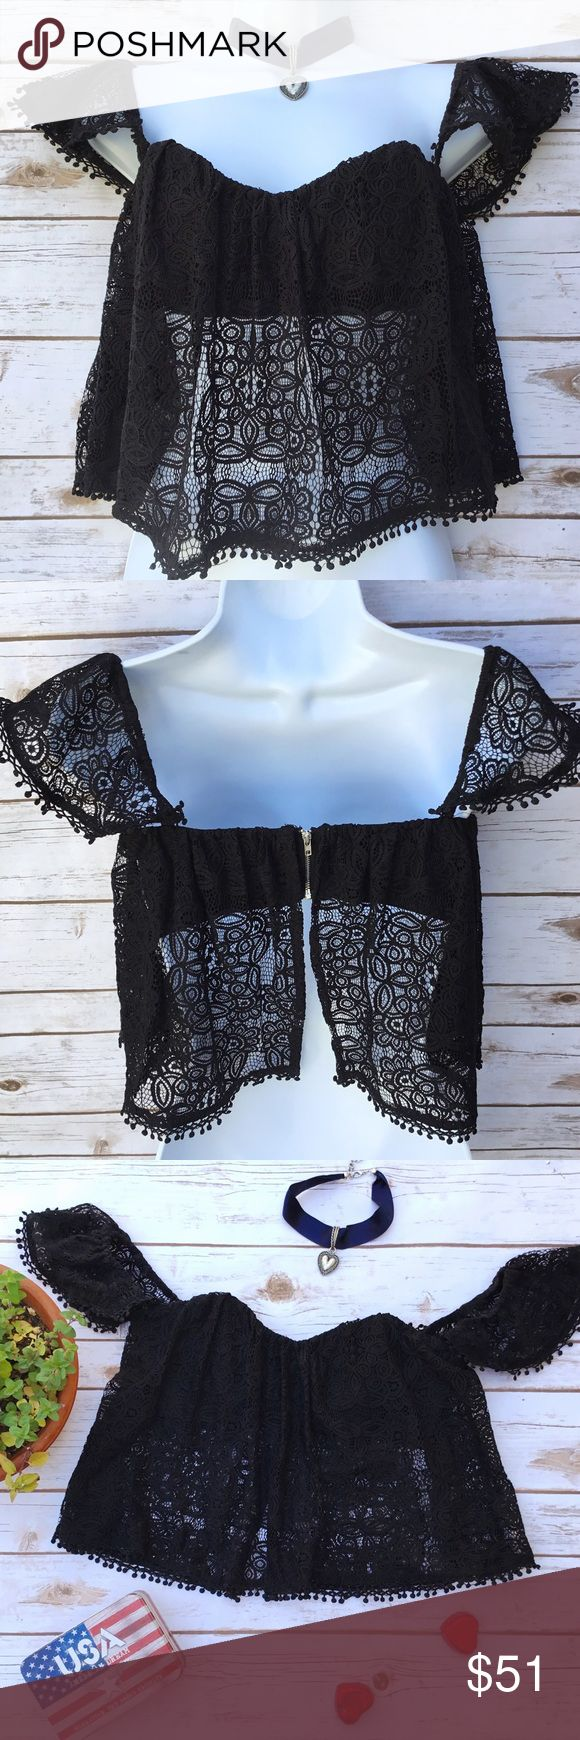 Black BOHO Festival Bandeau Top w/Lace Overlay Just add cut off shorts and you are good to go! Super sexy top, can be worn on or off shoulder. The attached bandeau has boning in front and zips in back. Size S, measures about 14.5 inches across the bust and about 15 inches in length. Cotton Candy LA Tops